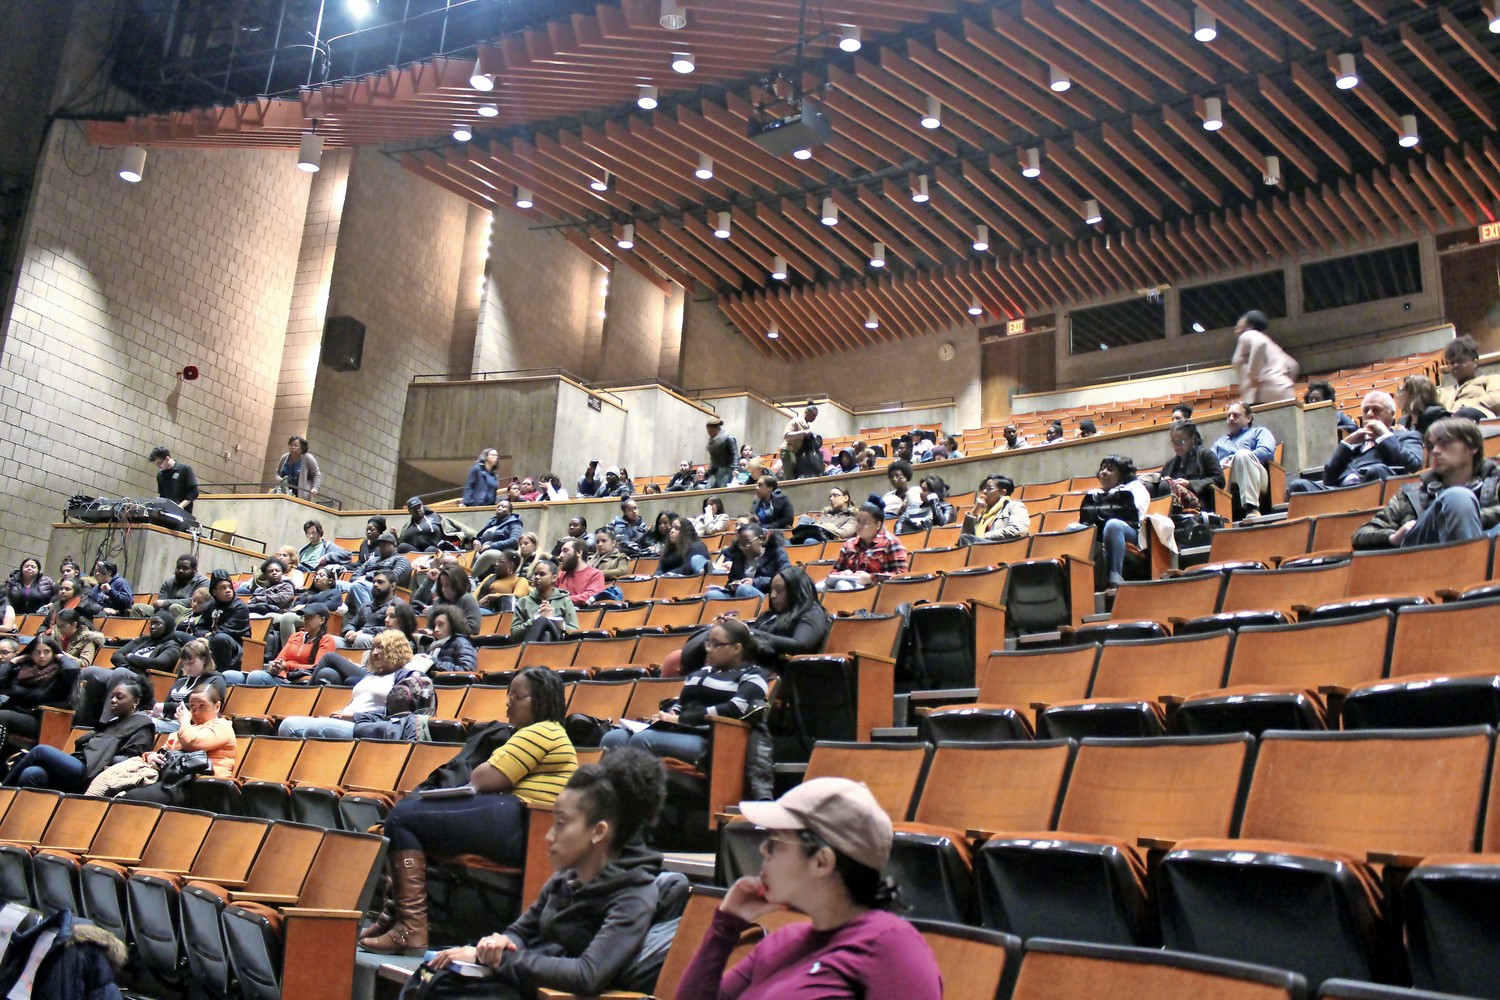 Students and faculty attend a panel discussion on mass incarceration at Lehman College. Damian Stapleton, a former inmate at Rikers Island, was one of the guest speakers.